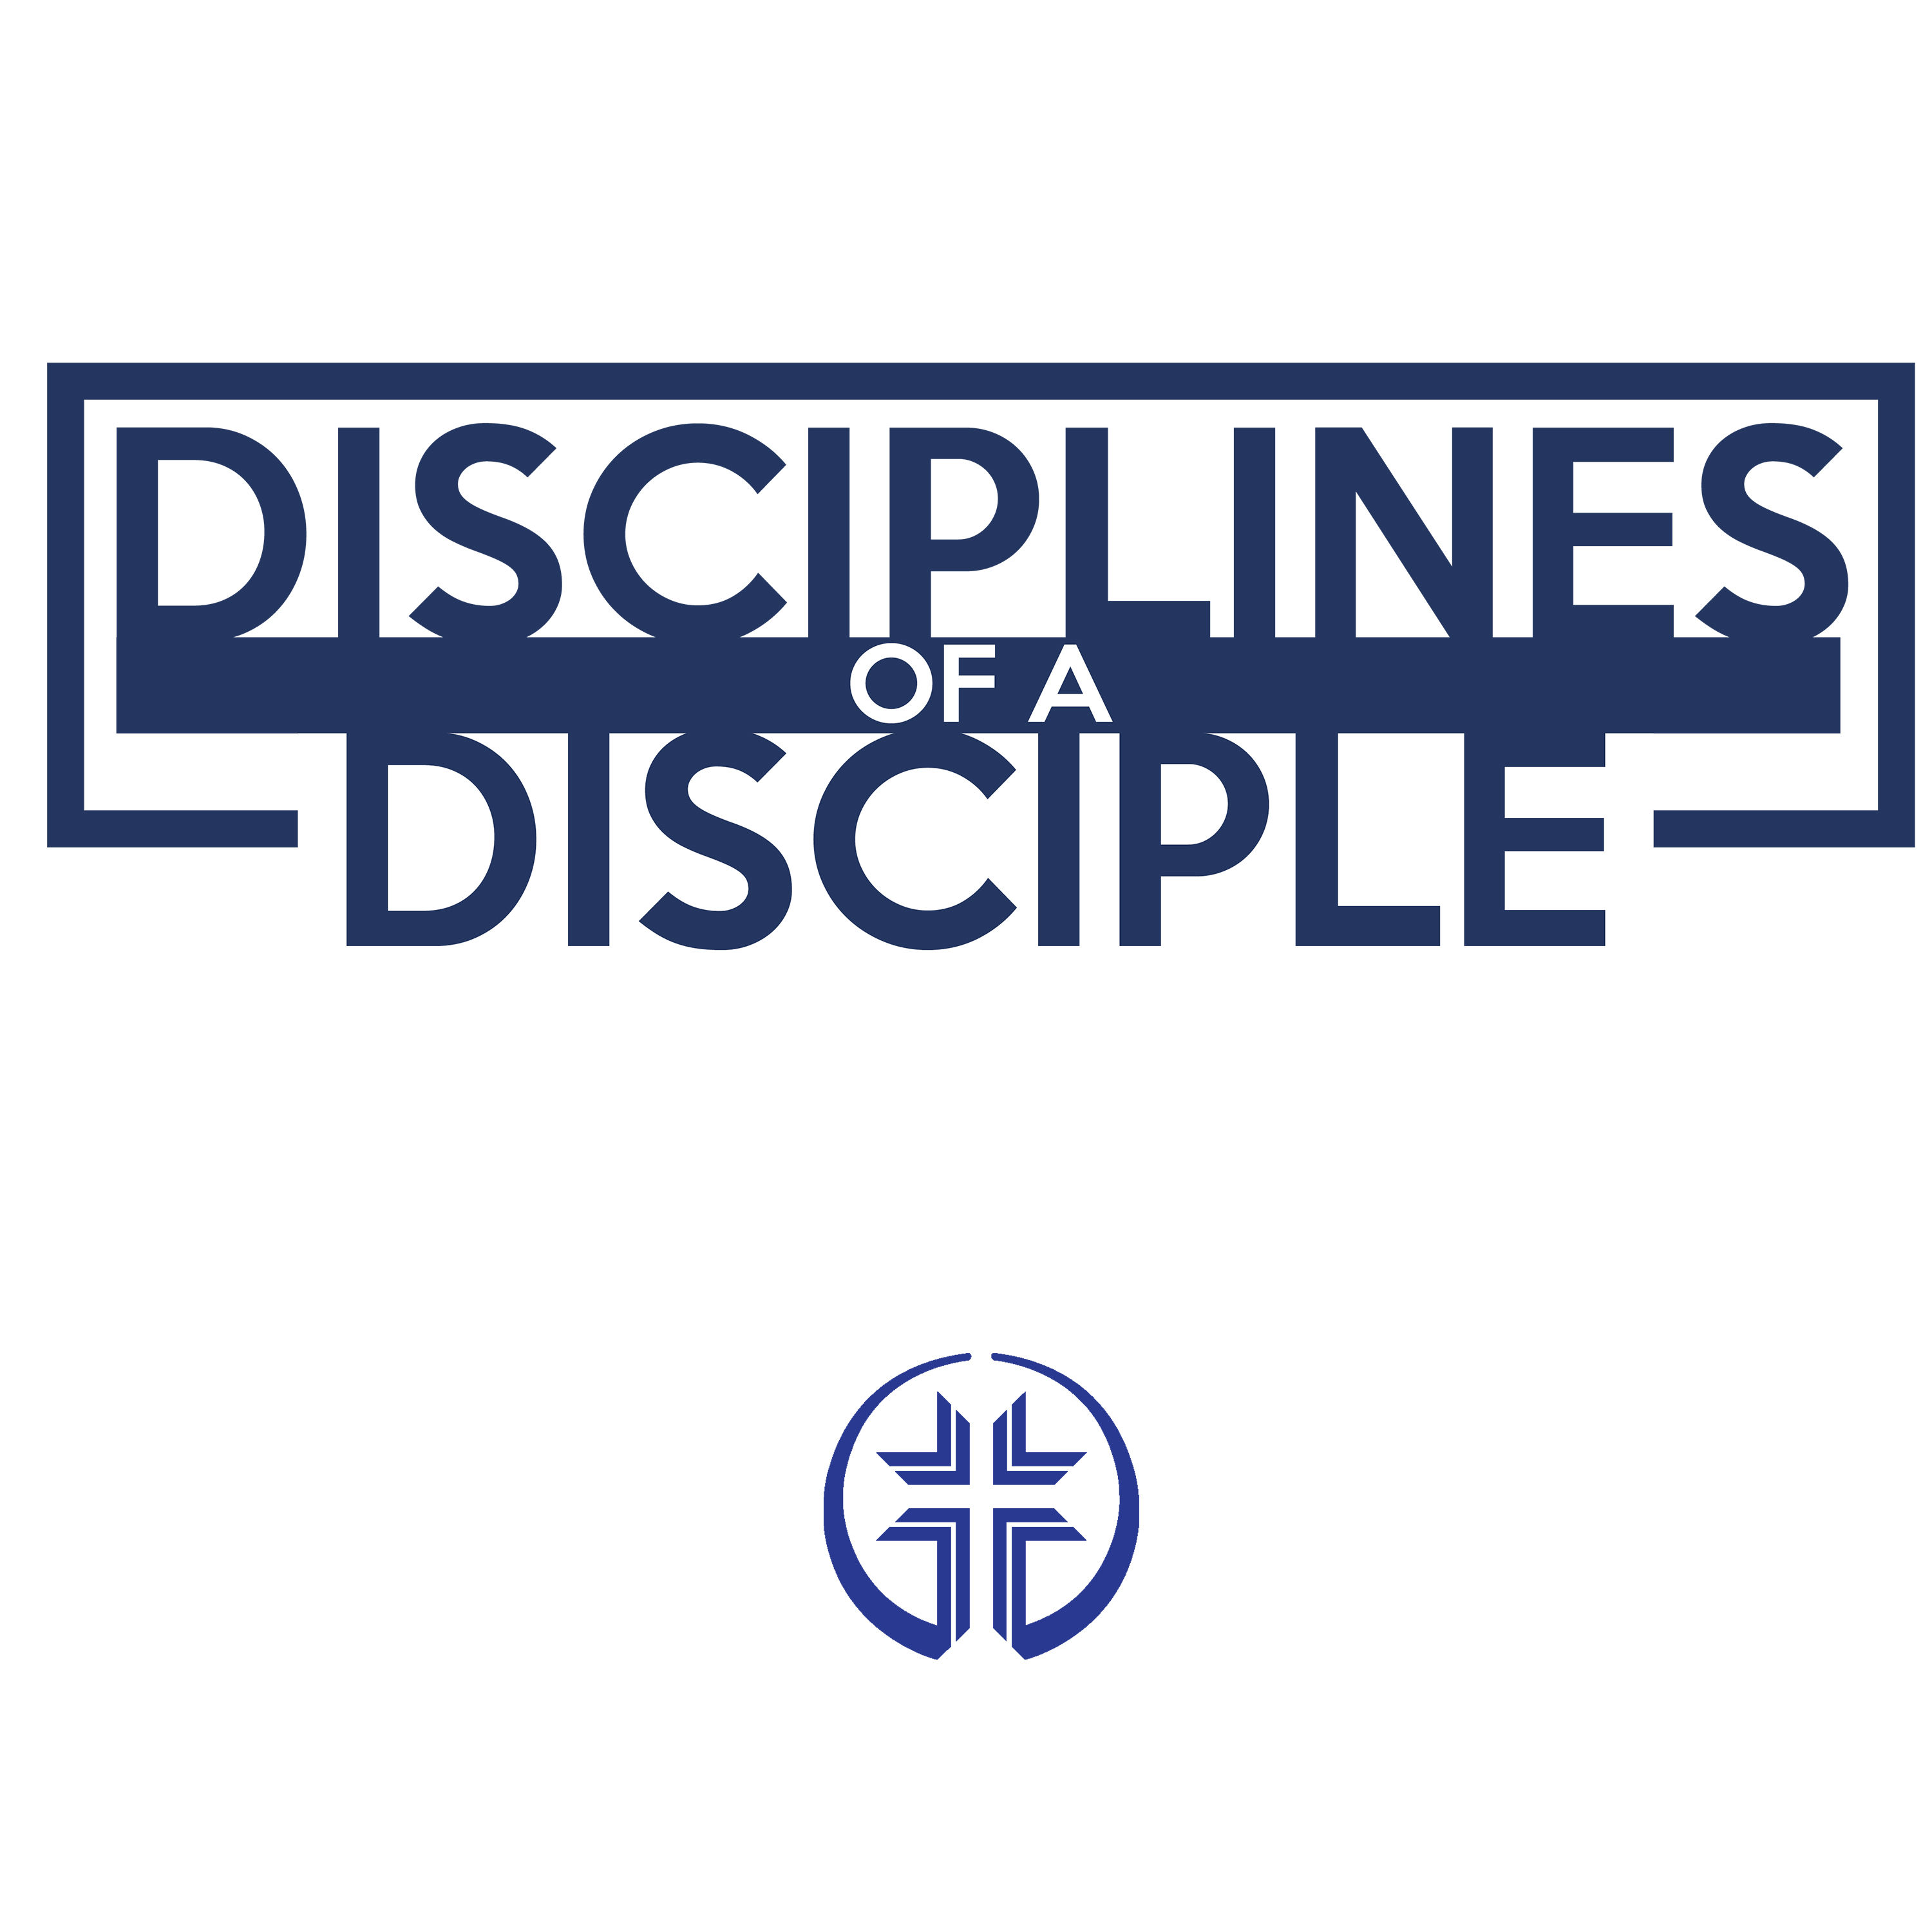 Disciplines of a Disciple